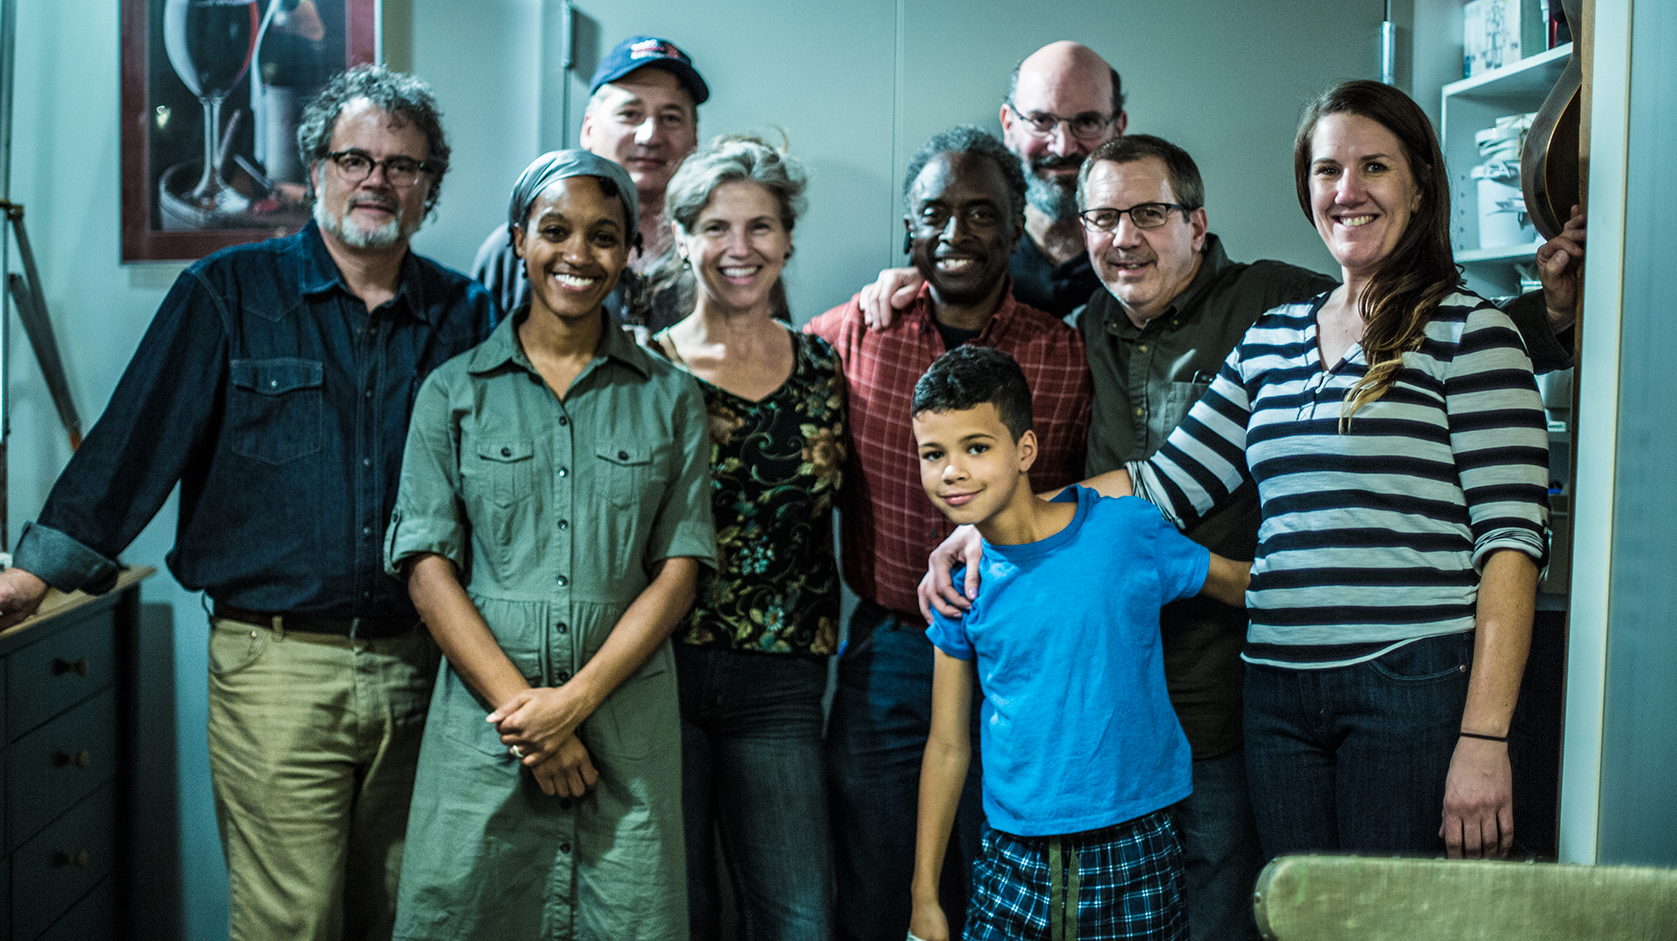 At the Wrap: Some of the cast & crew of Peach Pie. Front row: Robin JaVonne Smith, Jalon, and Meghann, Jalon's Mom. Second row: Howard Philips, Kathryn Howell, Roberto Mighty, Richard Fomo. Third row: Daniel Jacobs, Chuck Green. Not pictured: Brian Galford, Chuck Rosina, Diane Andronica, Jacoby, Johnny Quinones, Shawn Read & Tim Ouillette (he took the photo)